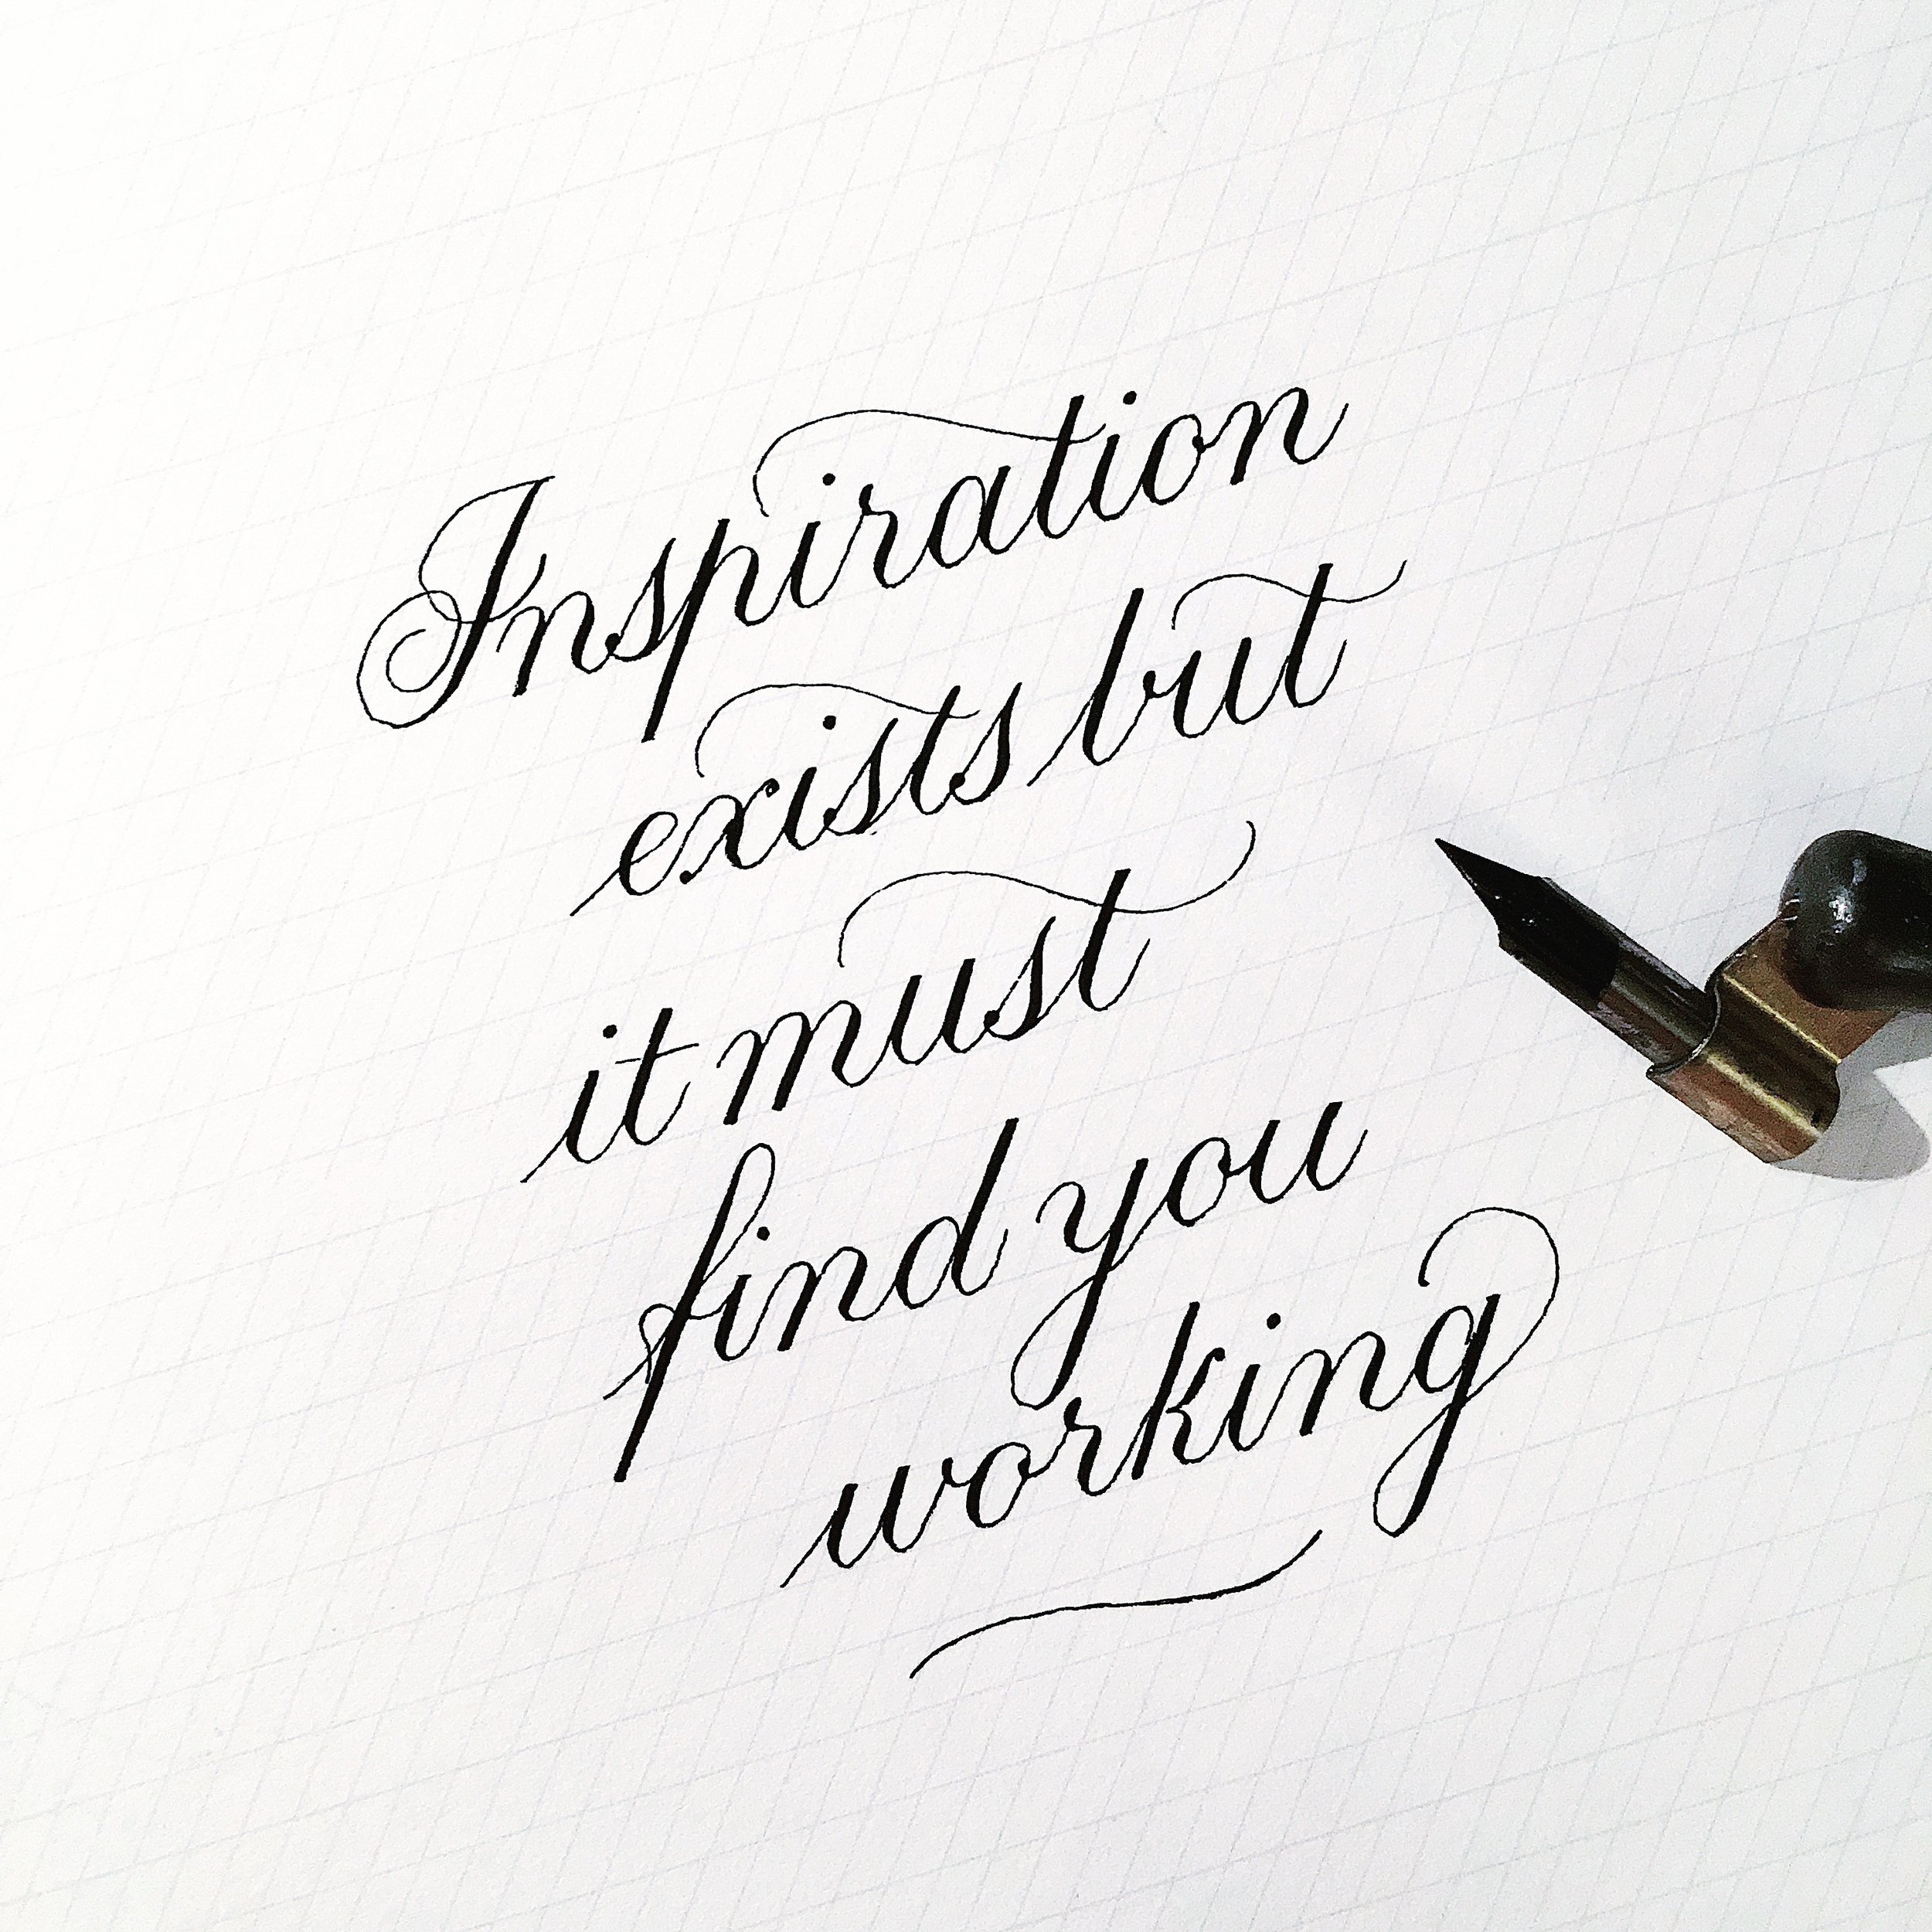 copperplate-calligraphy-inspiration-quote